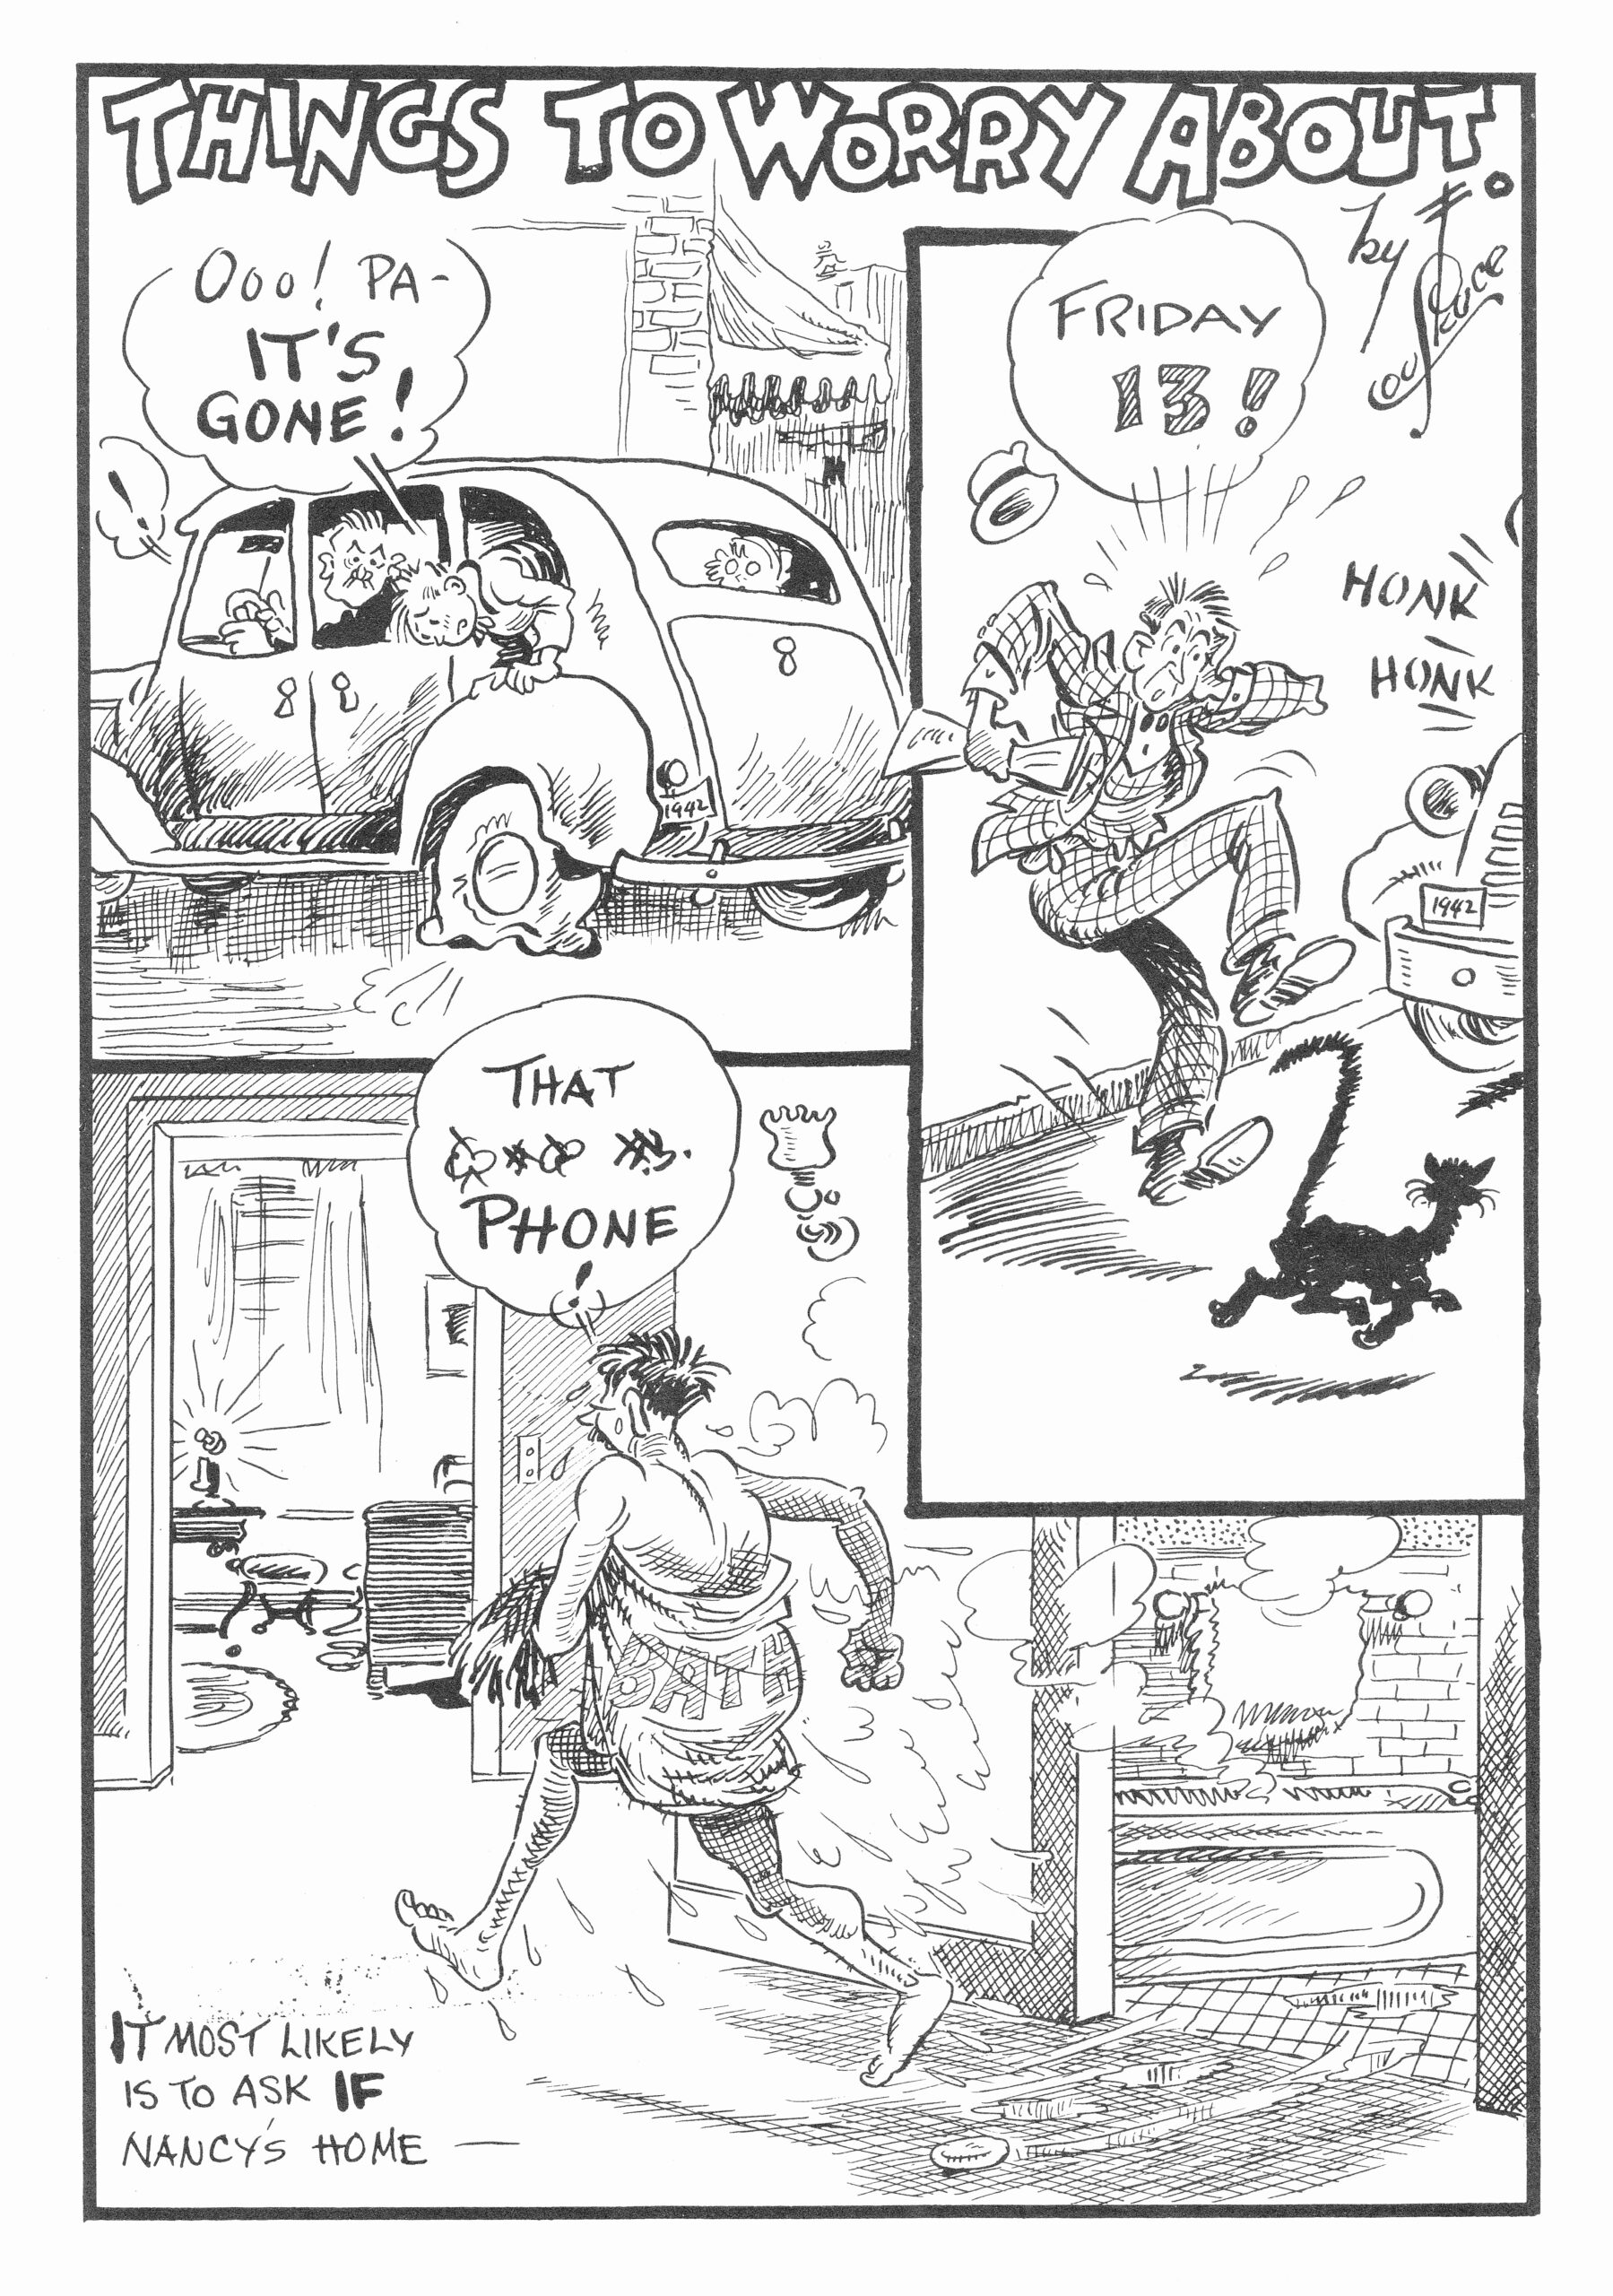 C:\Users\Robert\Documents\CANADIAN CARTOONING ILLUSTRATION and ANIMATION\IMAGE BY CARTOONIST OR ILLUS. S\SKUCE Lou, Now & Then Times, 1-1, IFC..jpg